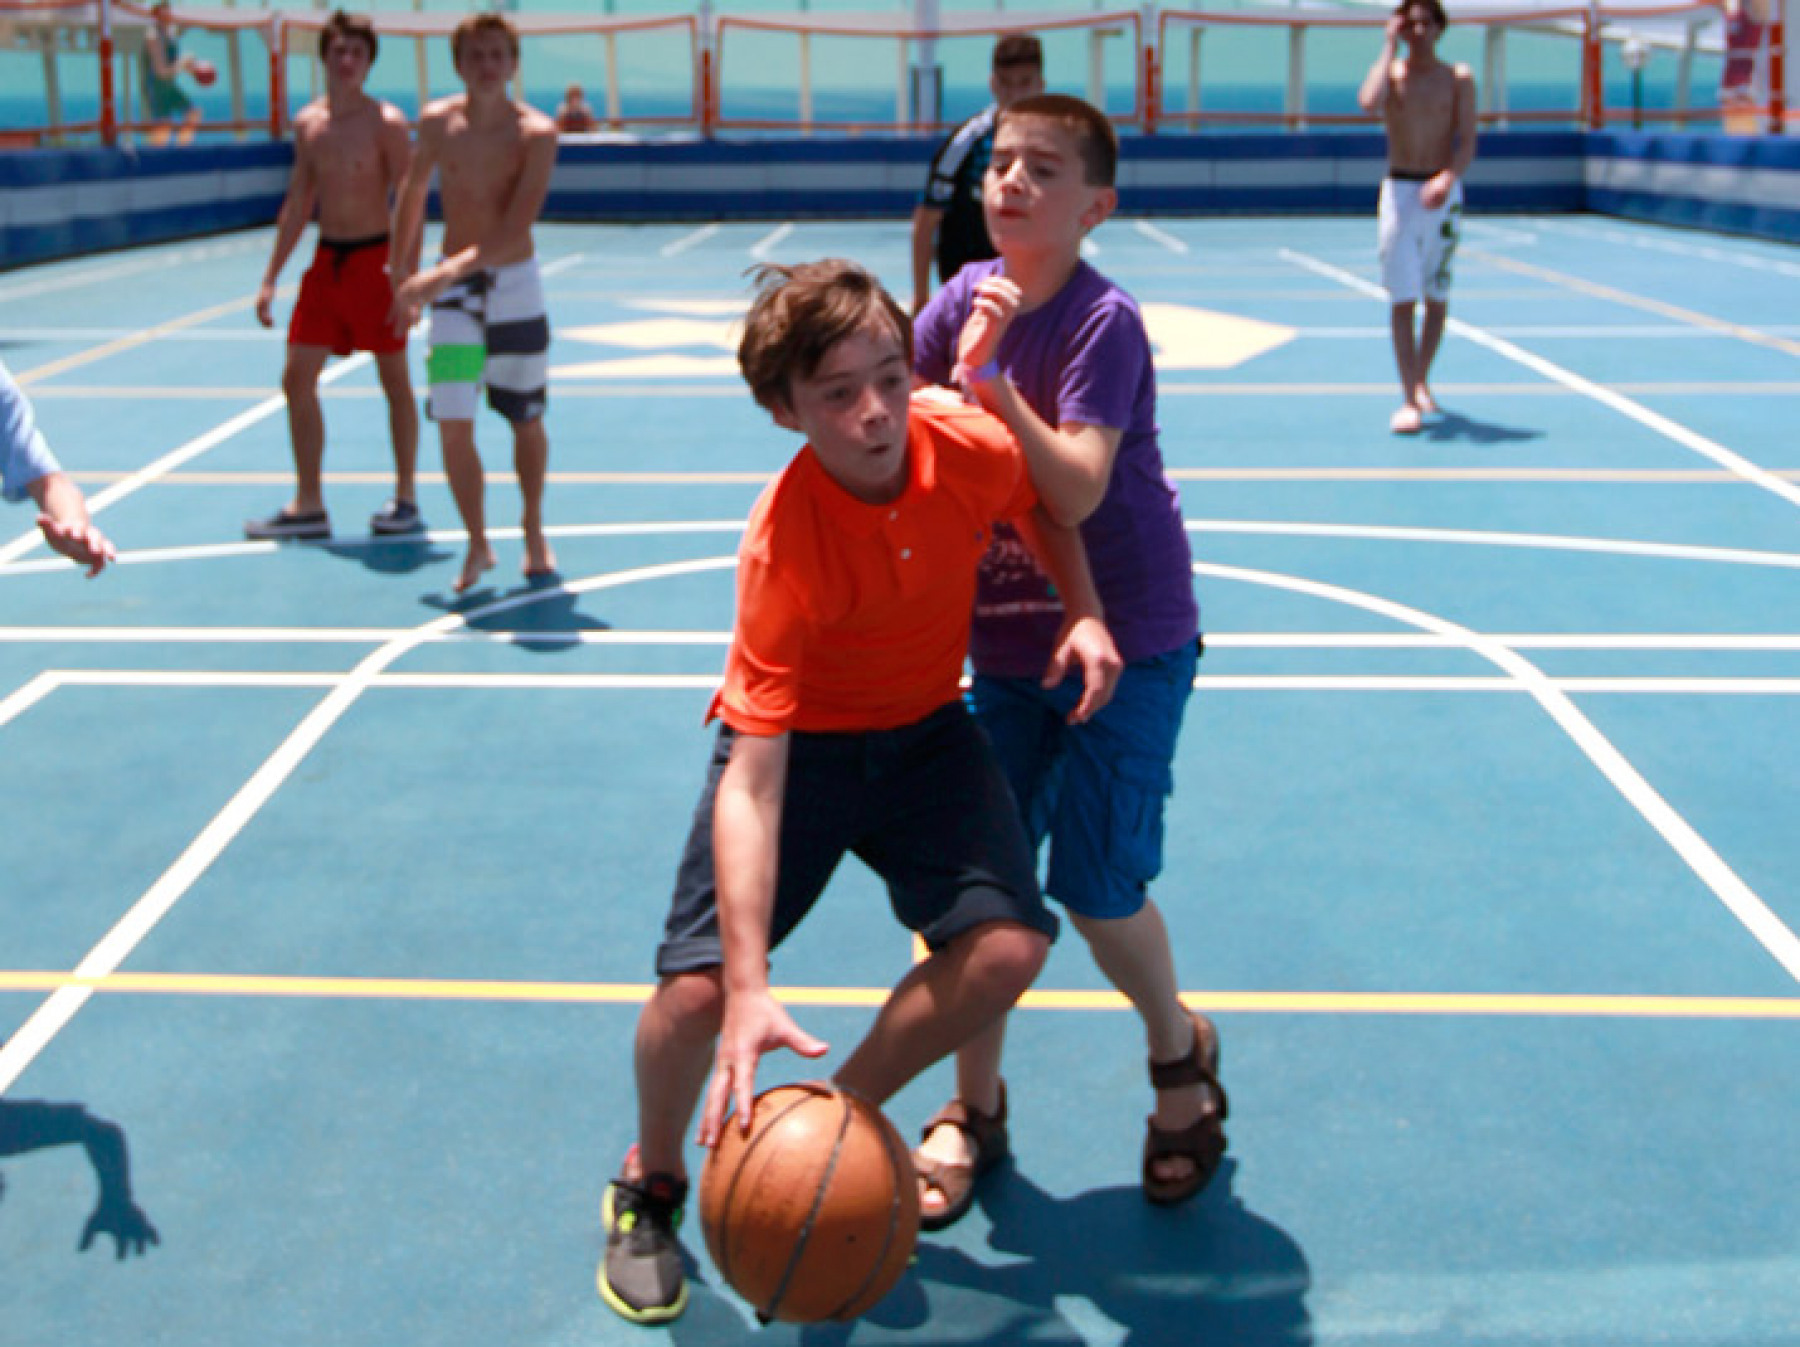 Royal Caribbean International Majesty of the Seas Exterior Basketball Courts.jpg